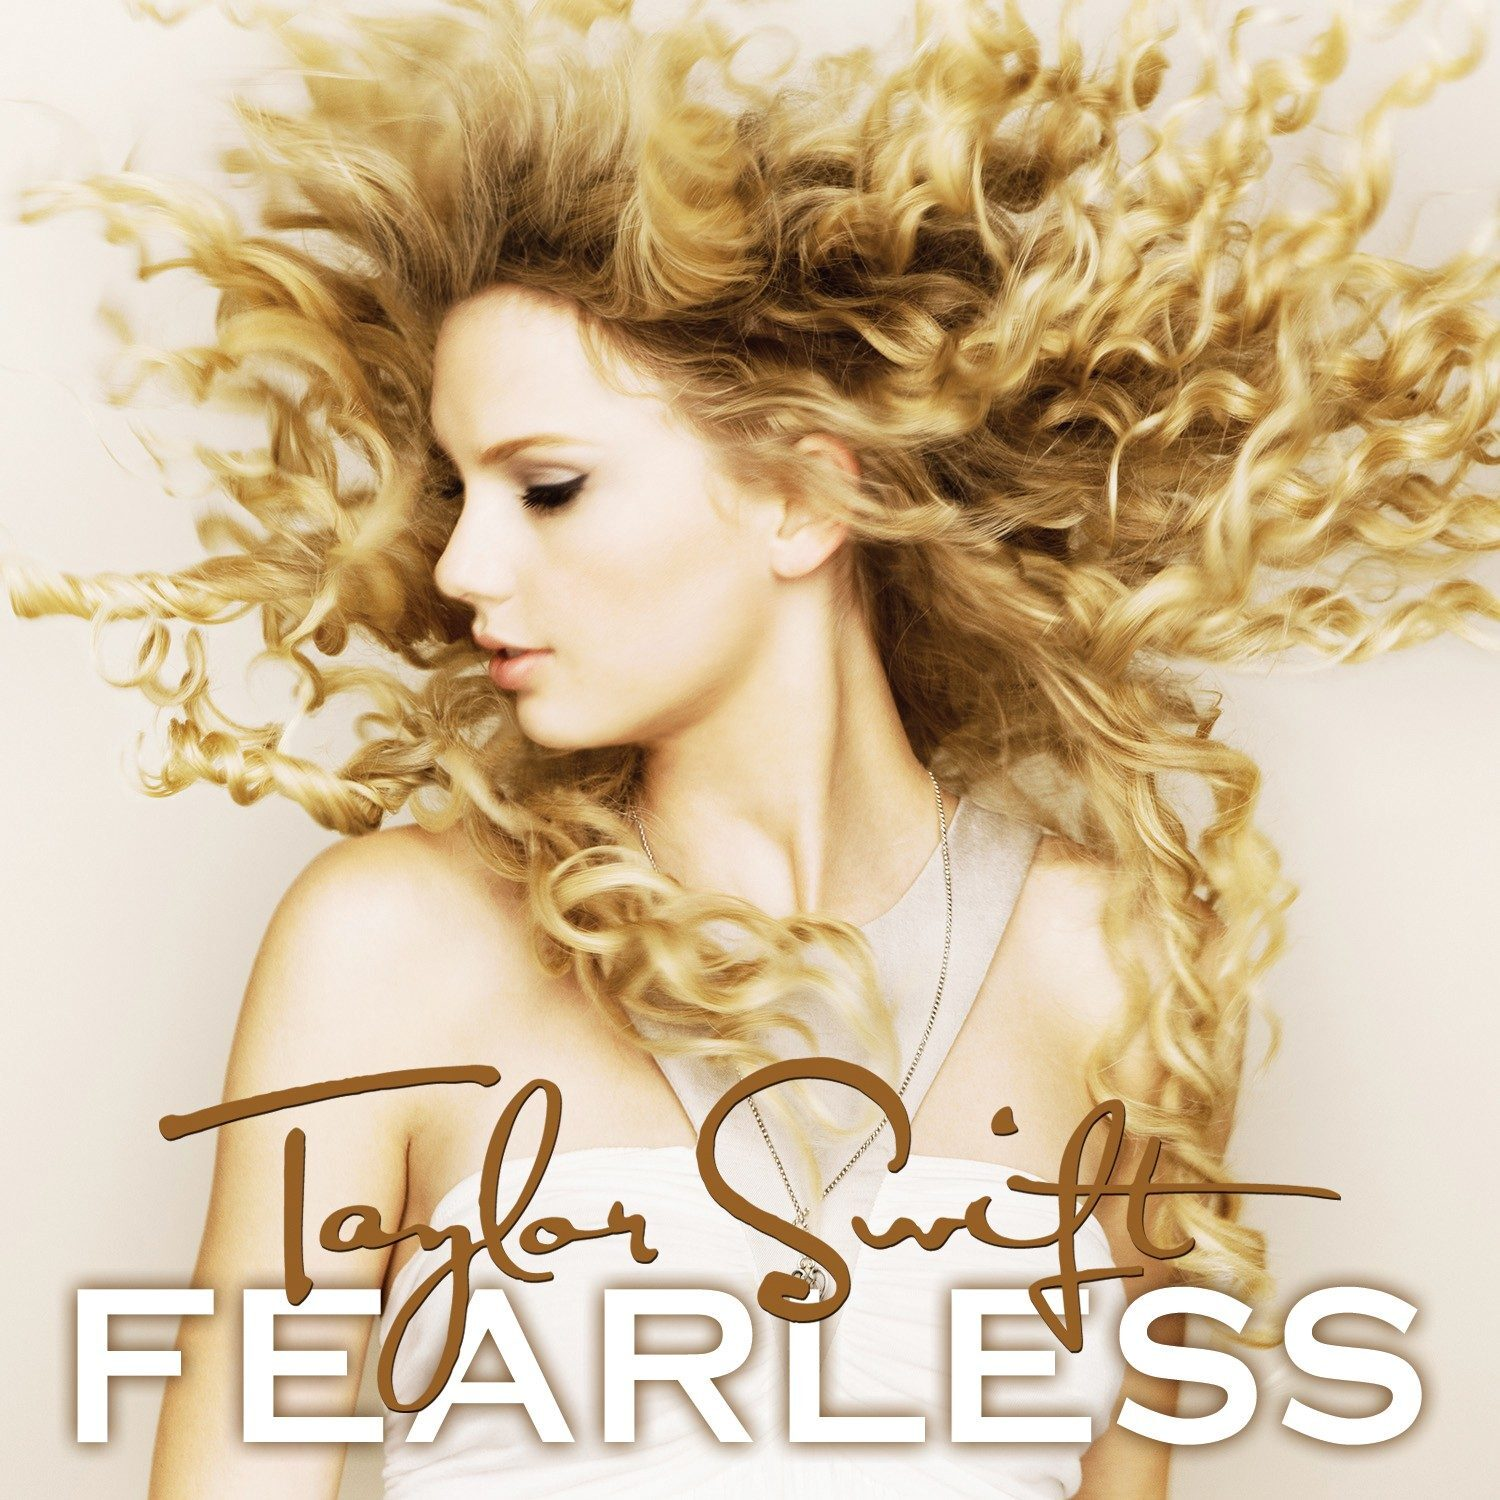 Taylor Swift, Fearless